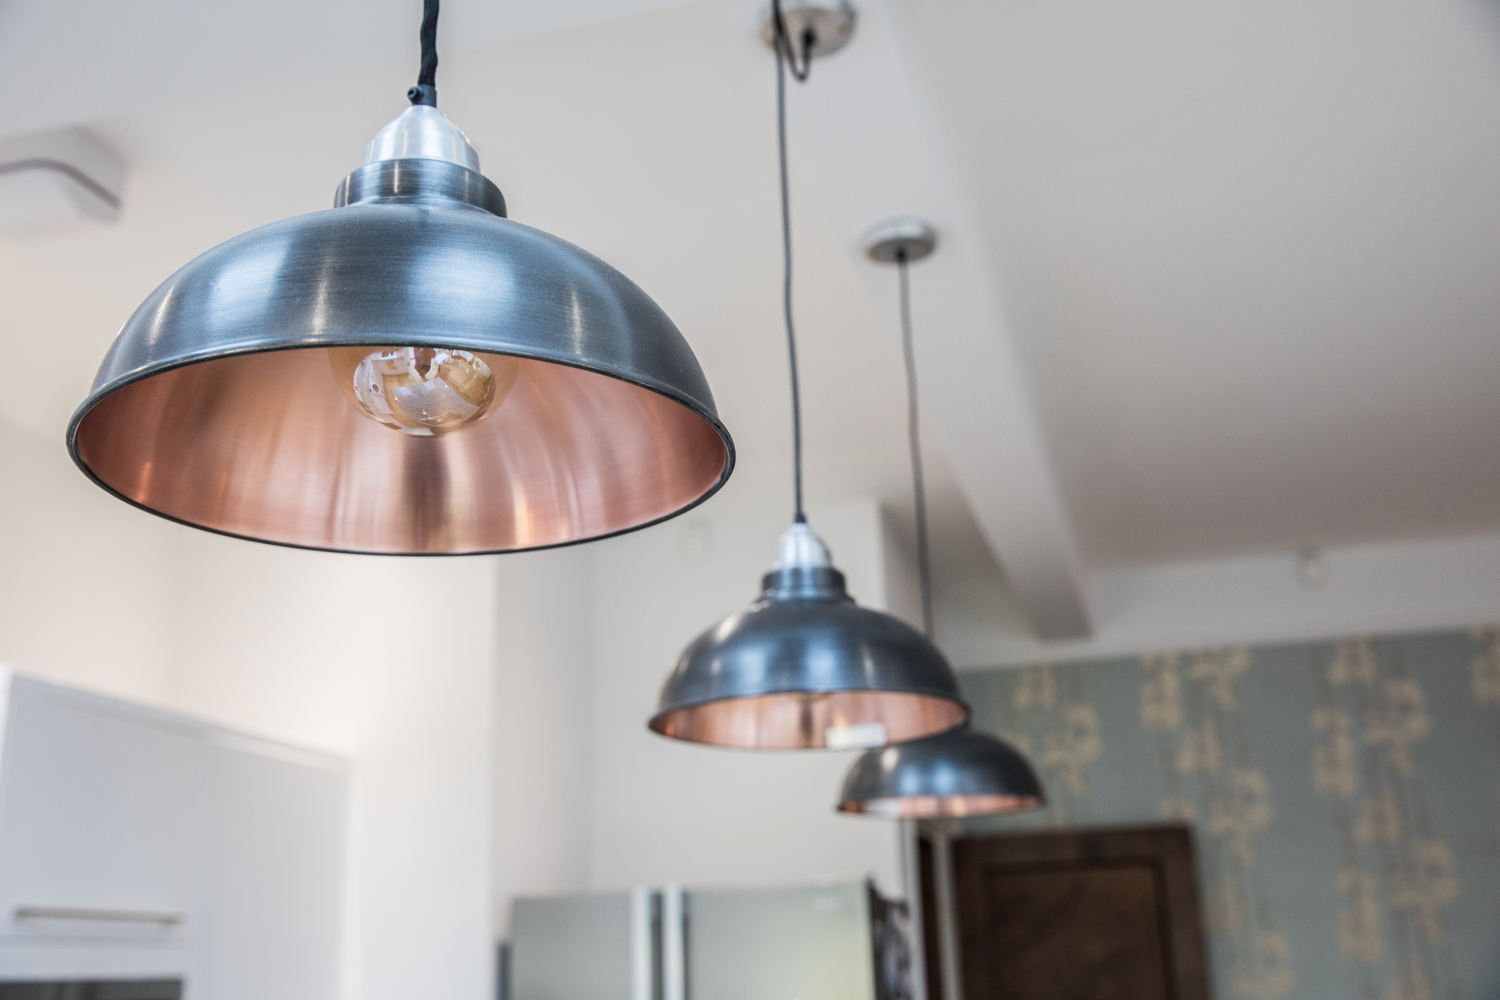 Nancy's kitchen with the 12 inch Old Factory Pendants